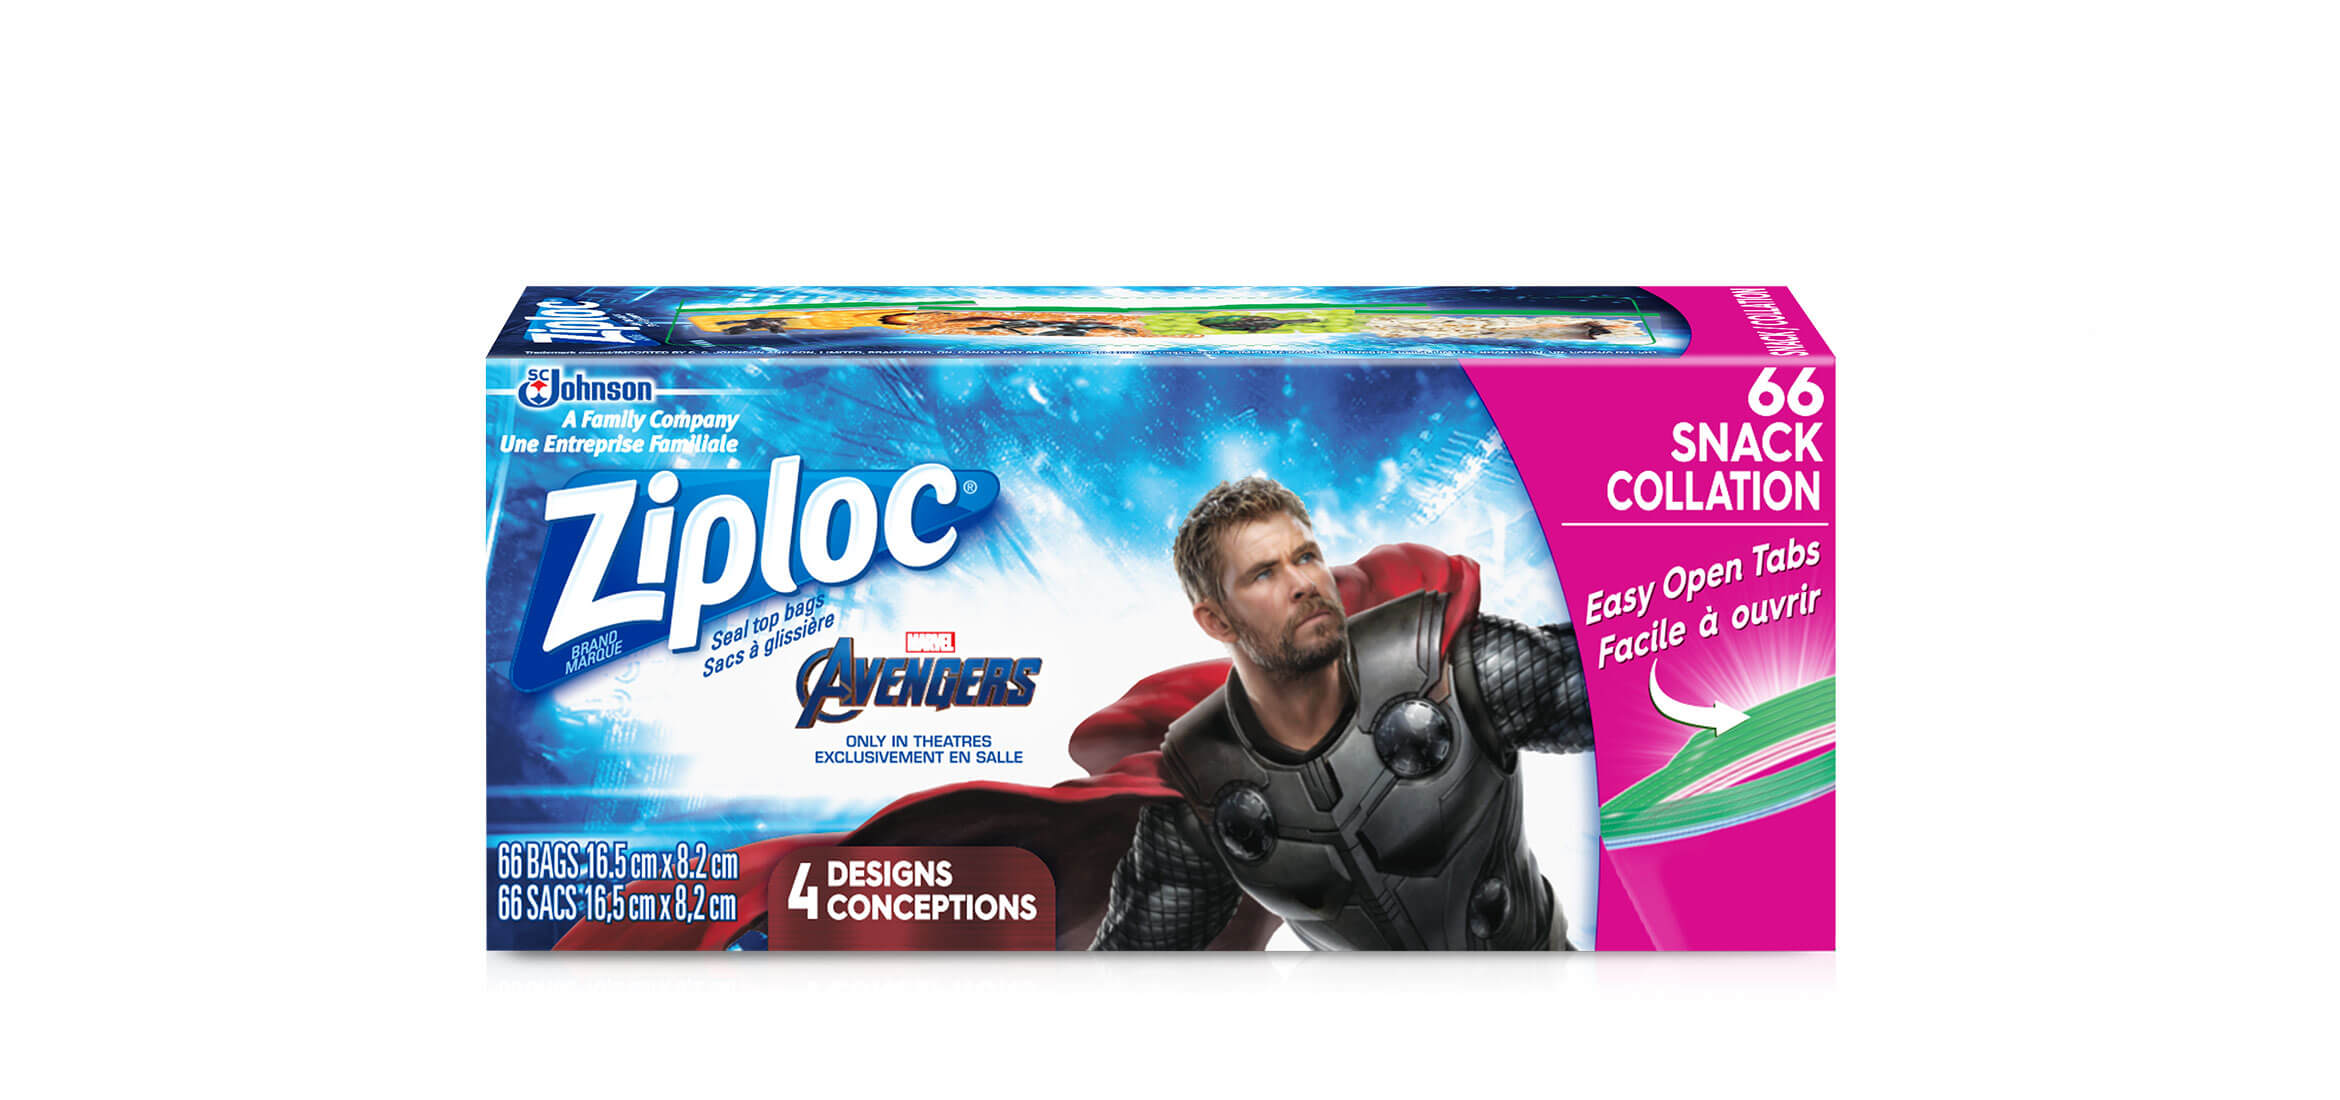 Avengers-Canada-Bag-Snack-Hero-CA-2X